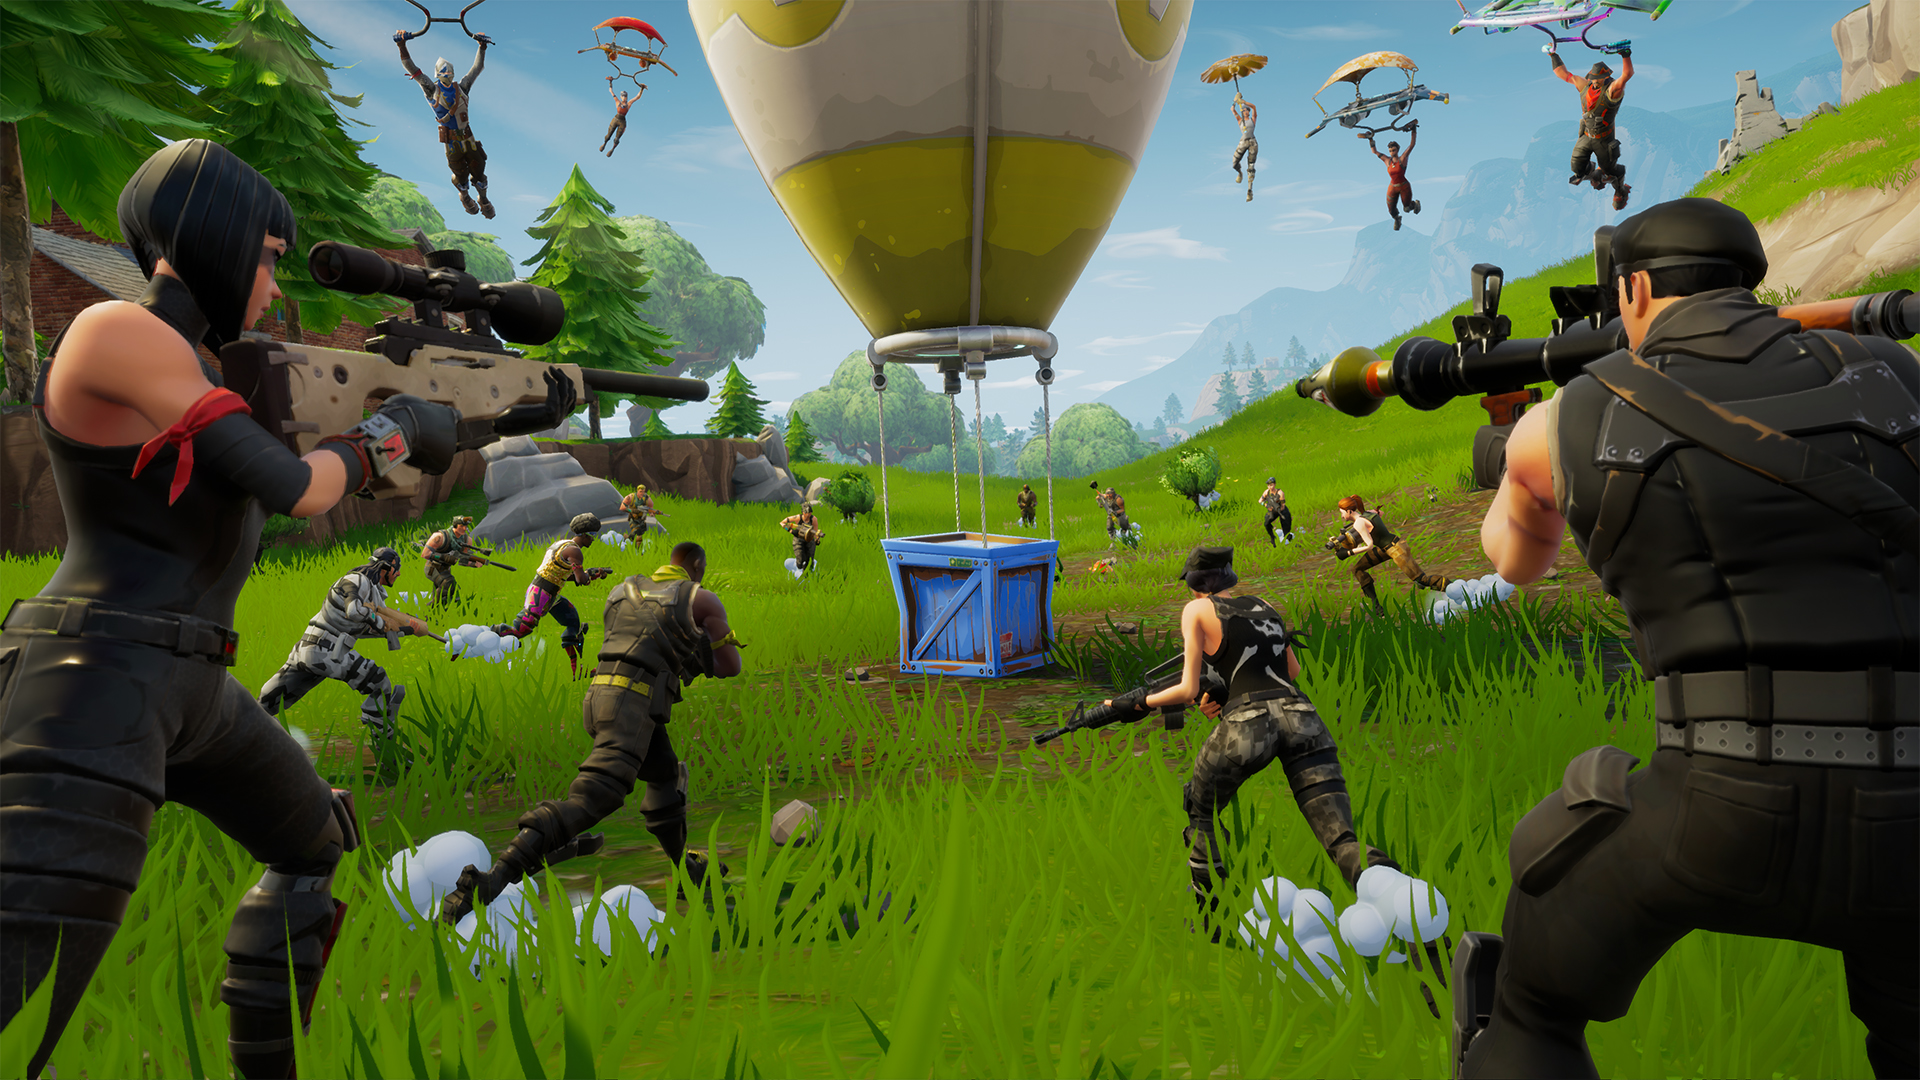 Fortnite Mobile App APK for Android, iOS, and PC Free Download